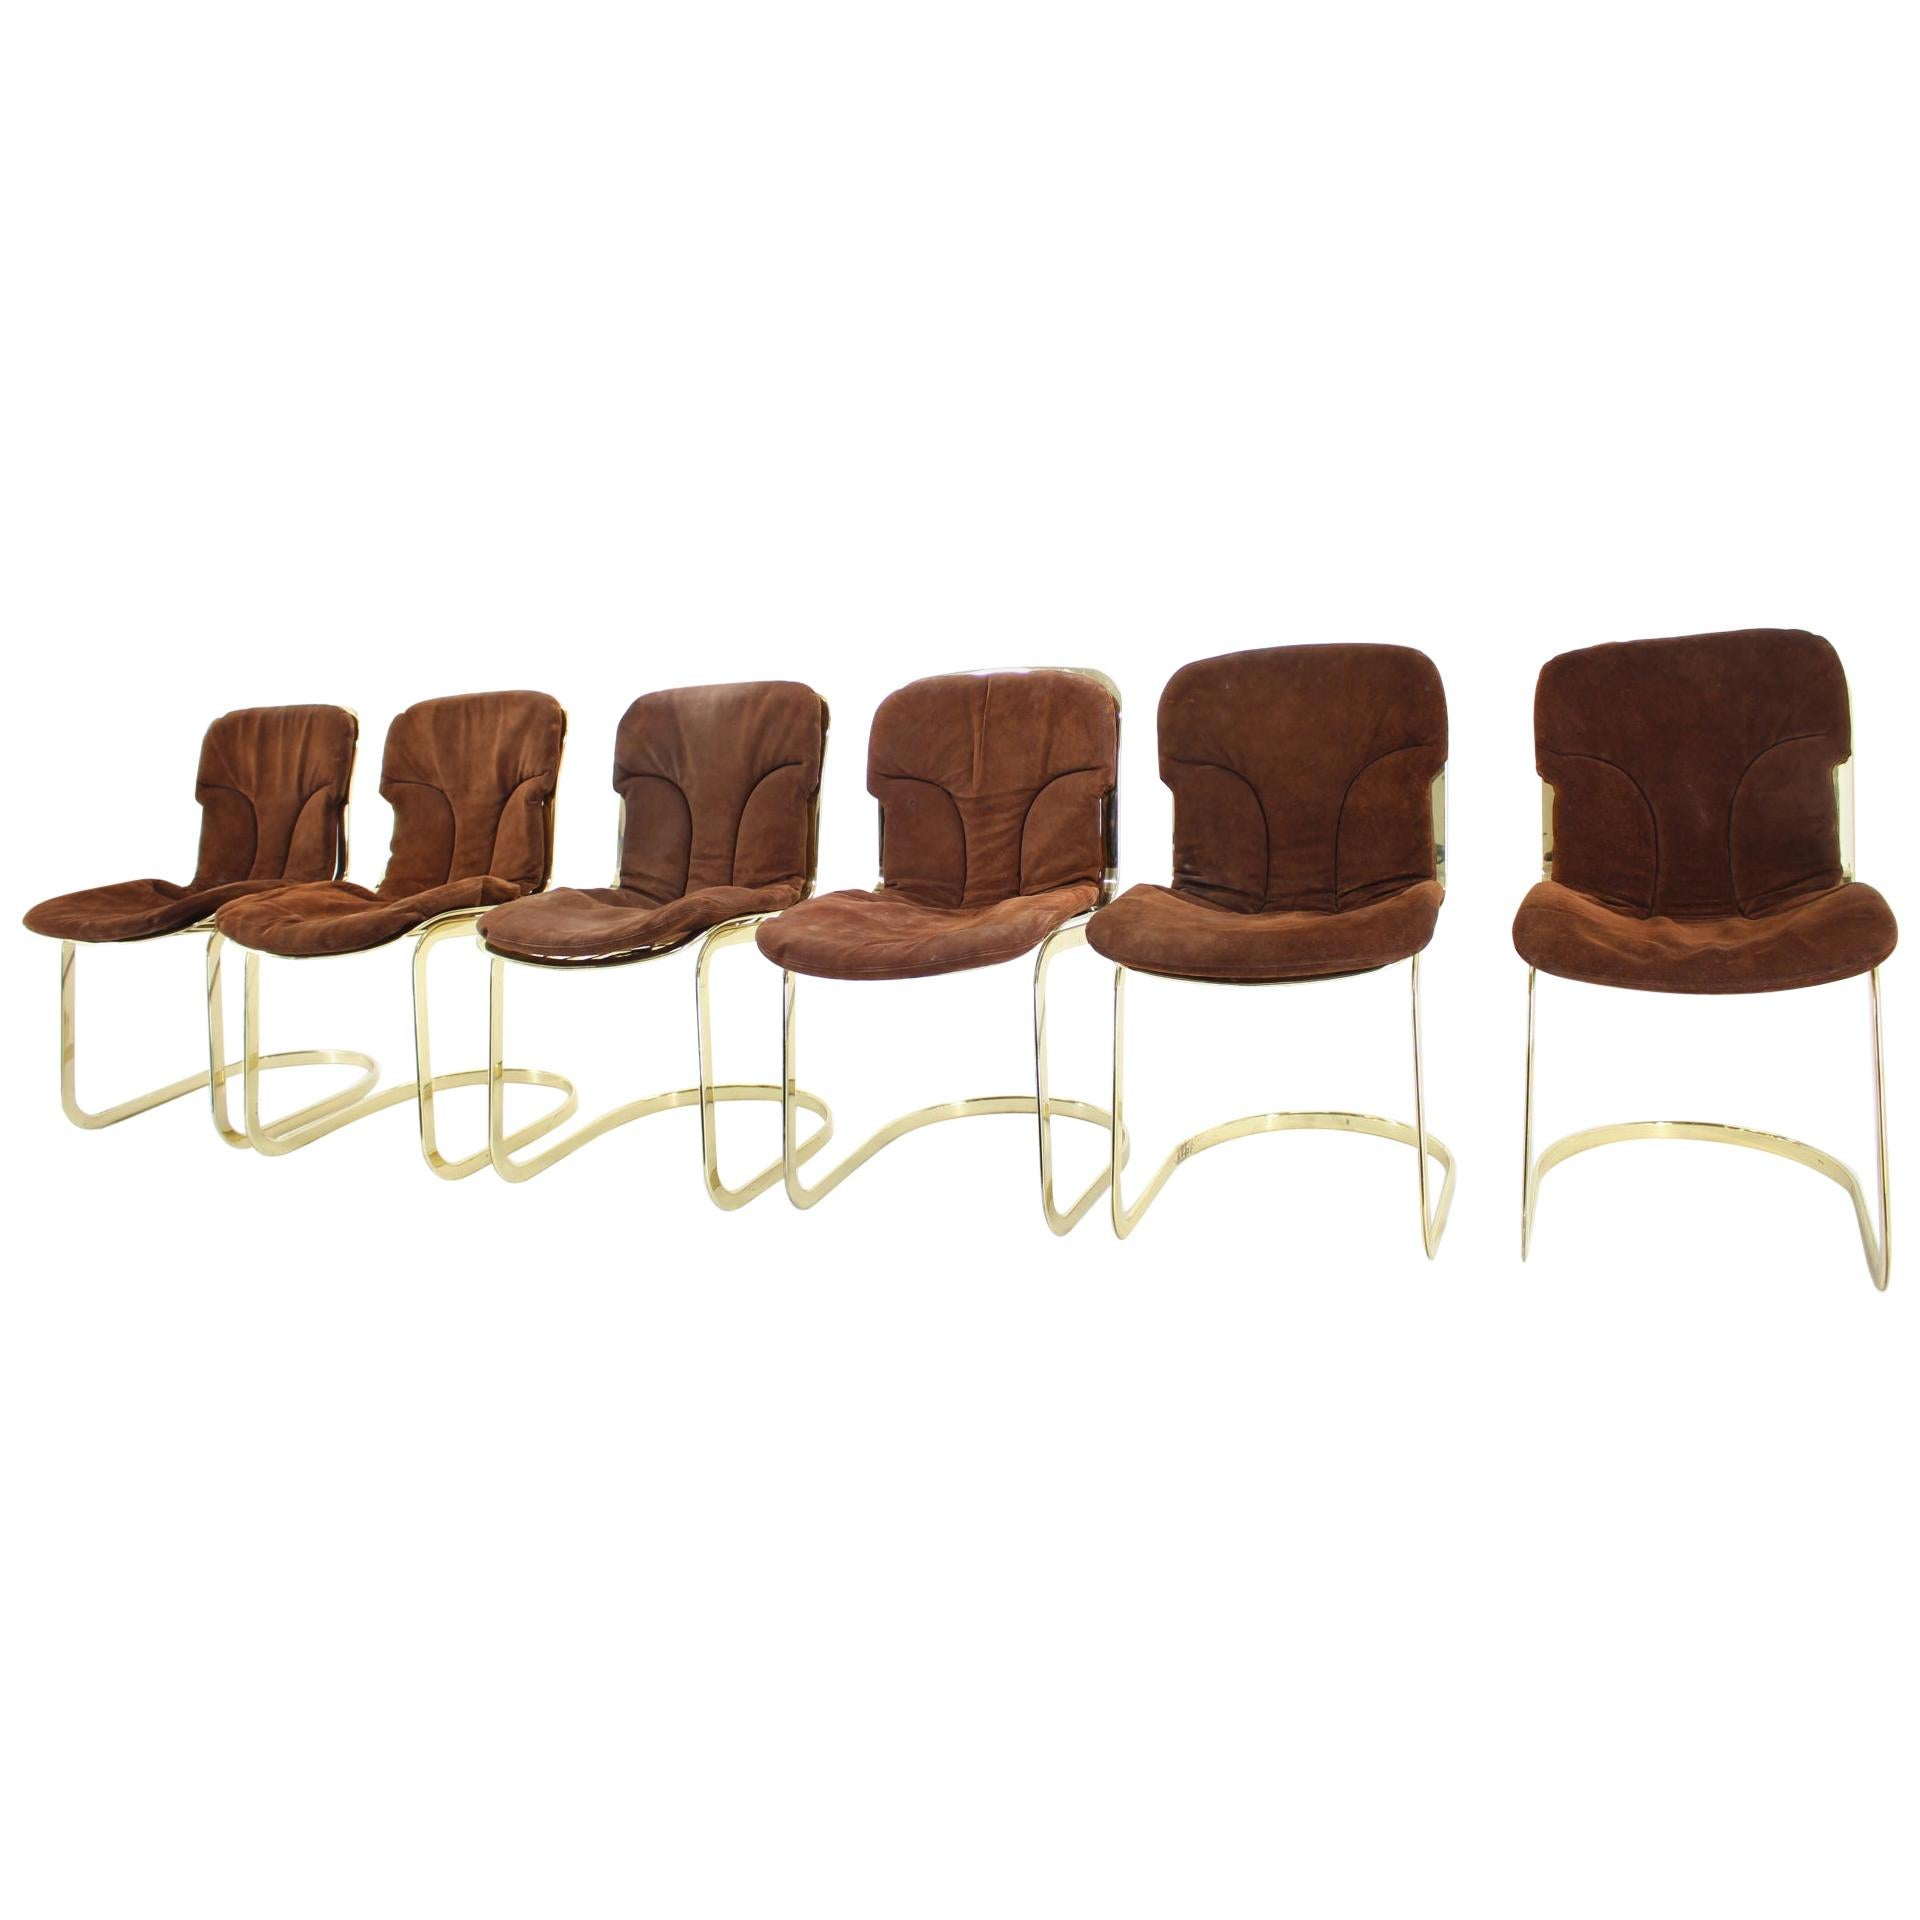 Set of Six Leather Italian Dining Chairs by Willy Rizzo for Cidue, 1970s